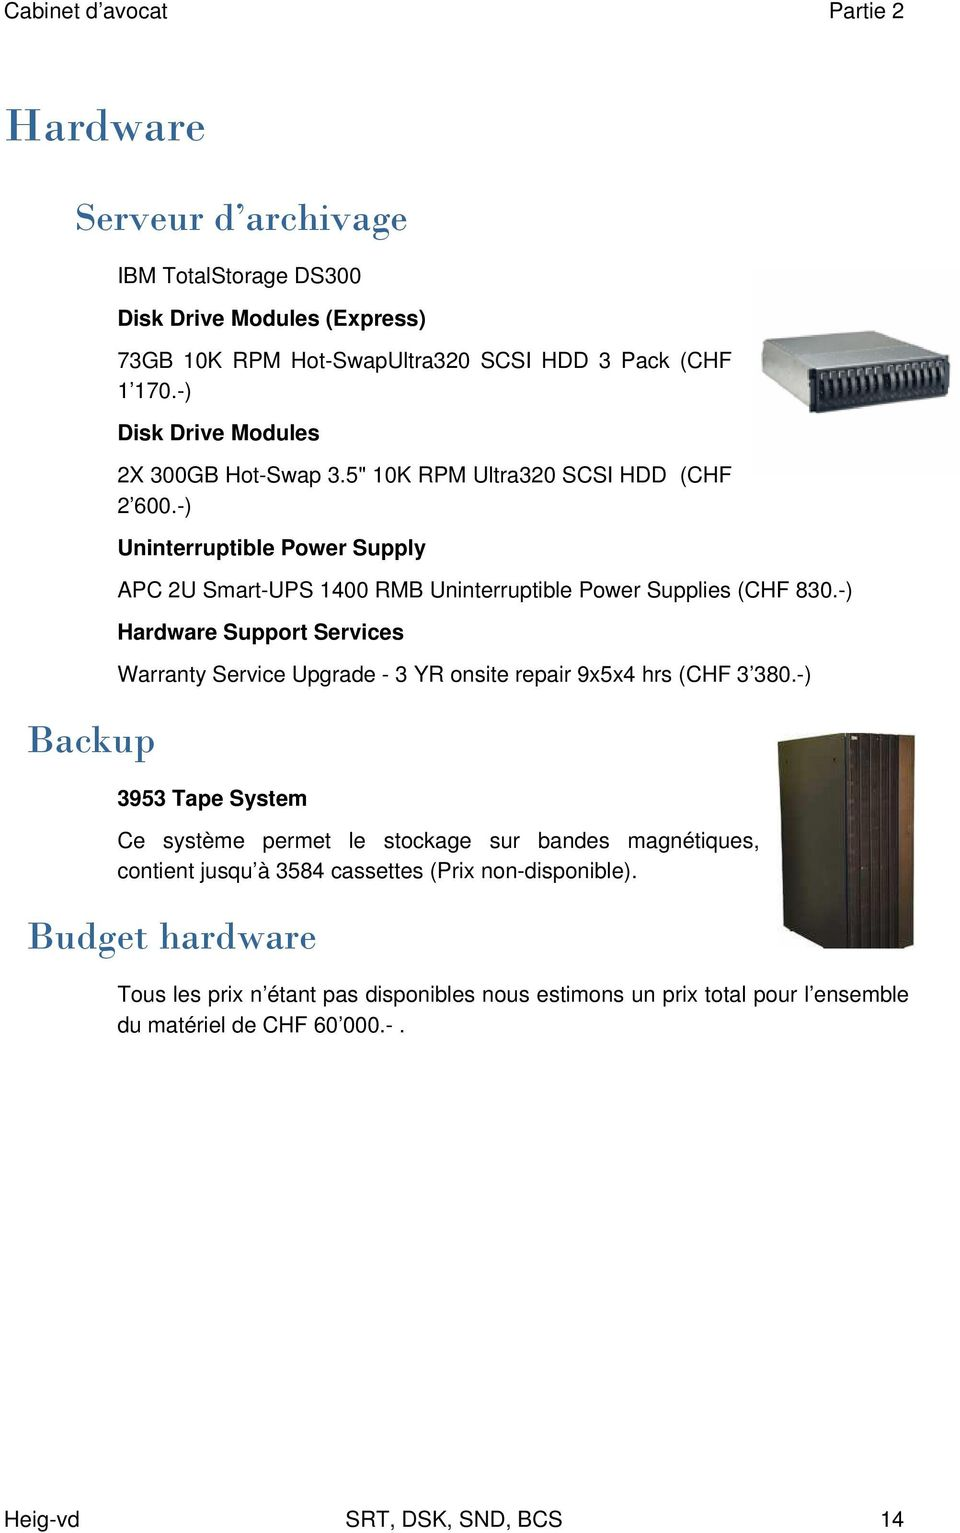 -) Uninterruptible Power Supply APC 2U Smart-UPS 1400 RMB Uninterruptible Power Supplies (CHF 830.